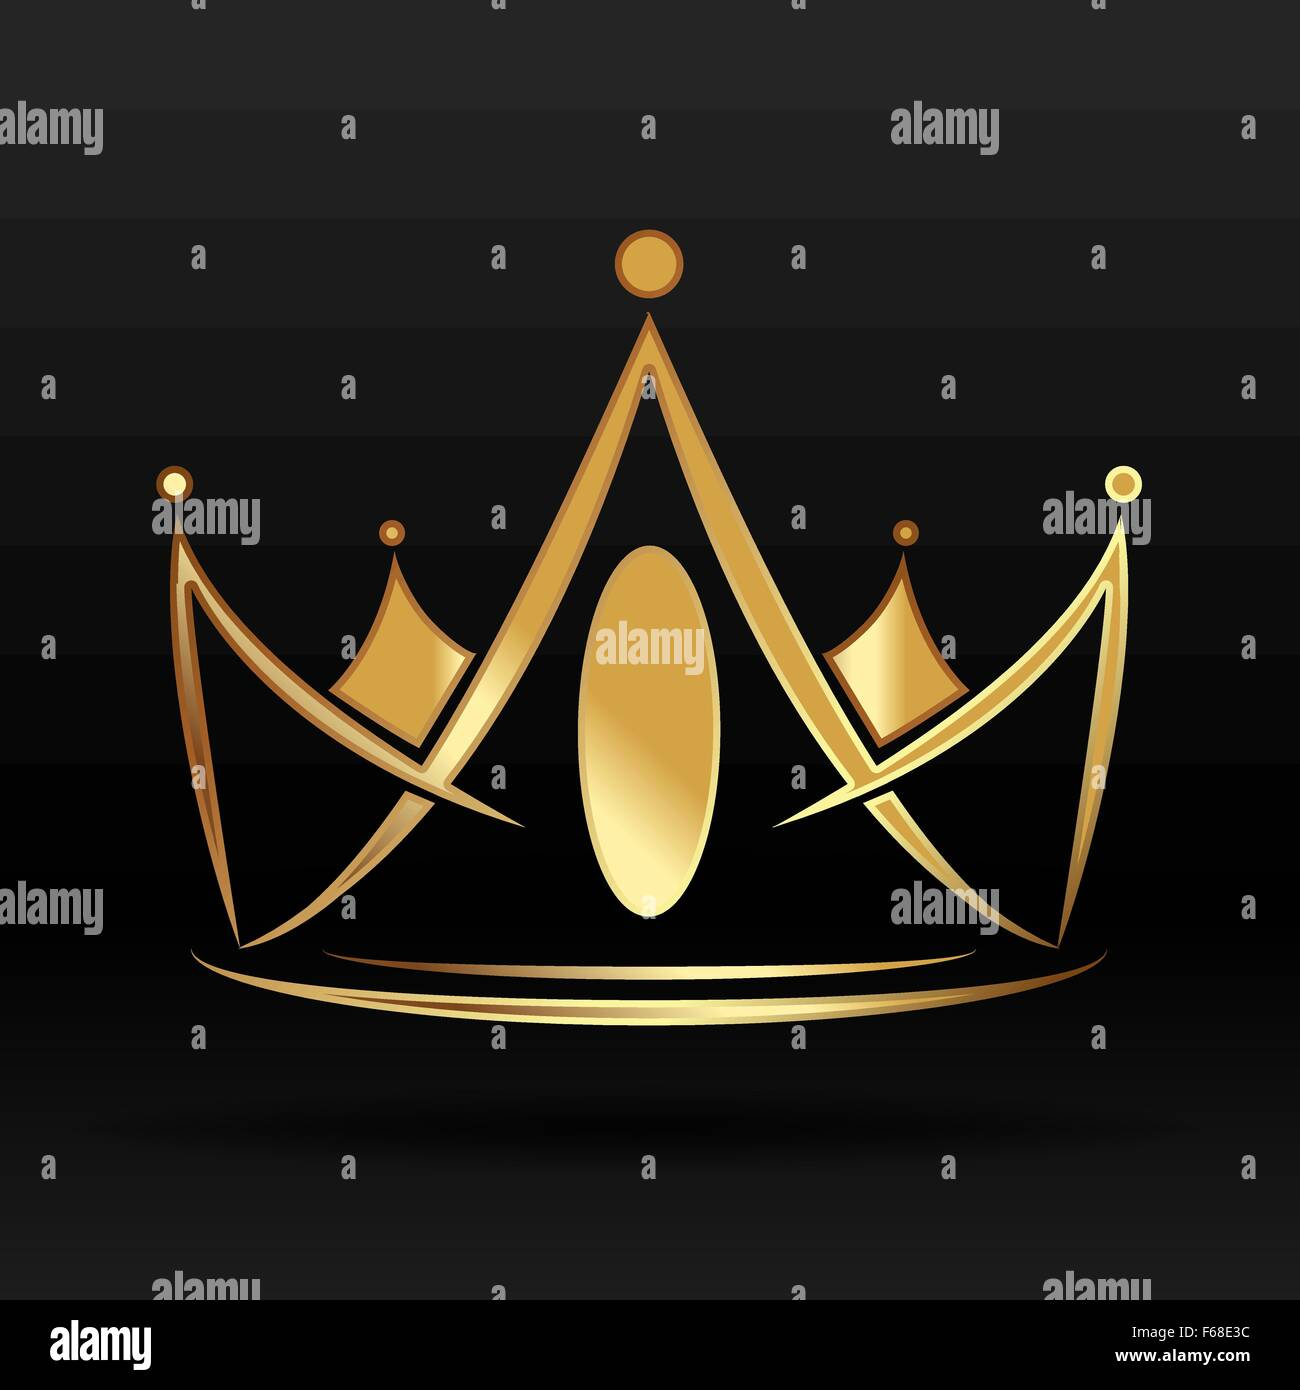 Gold crown for logo and graphic designer - Stock Vector